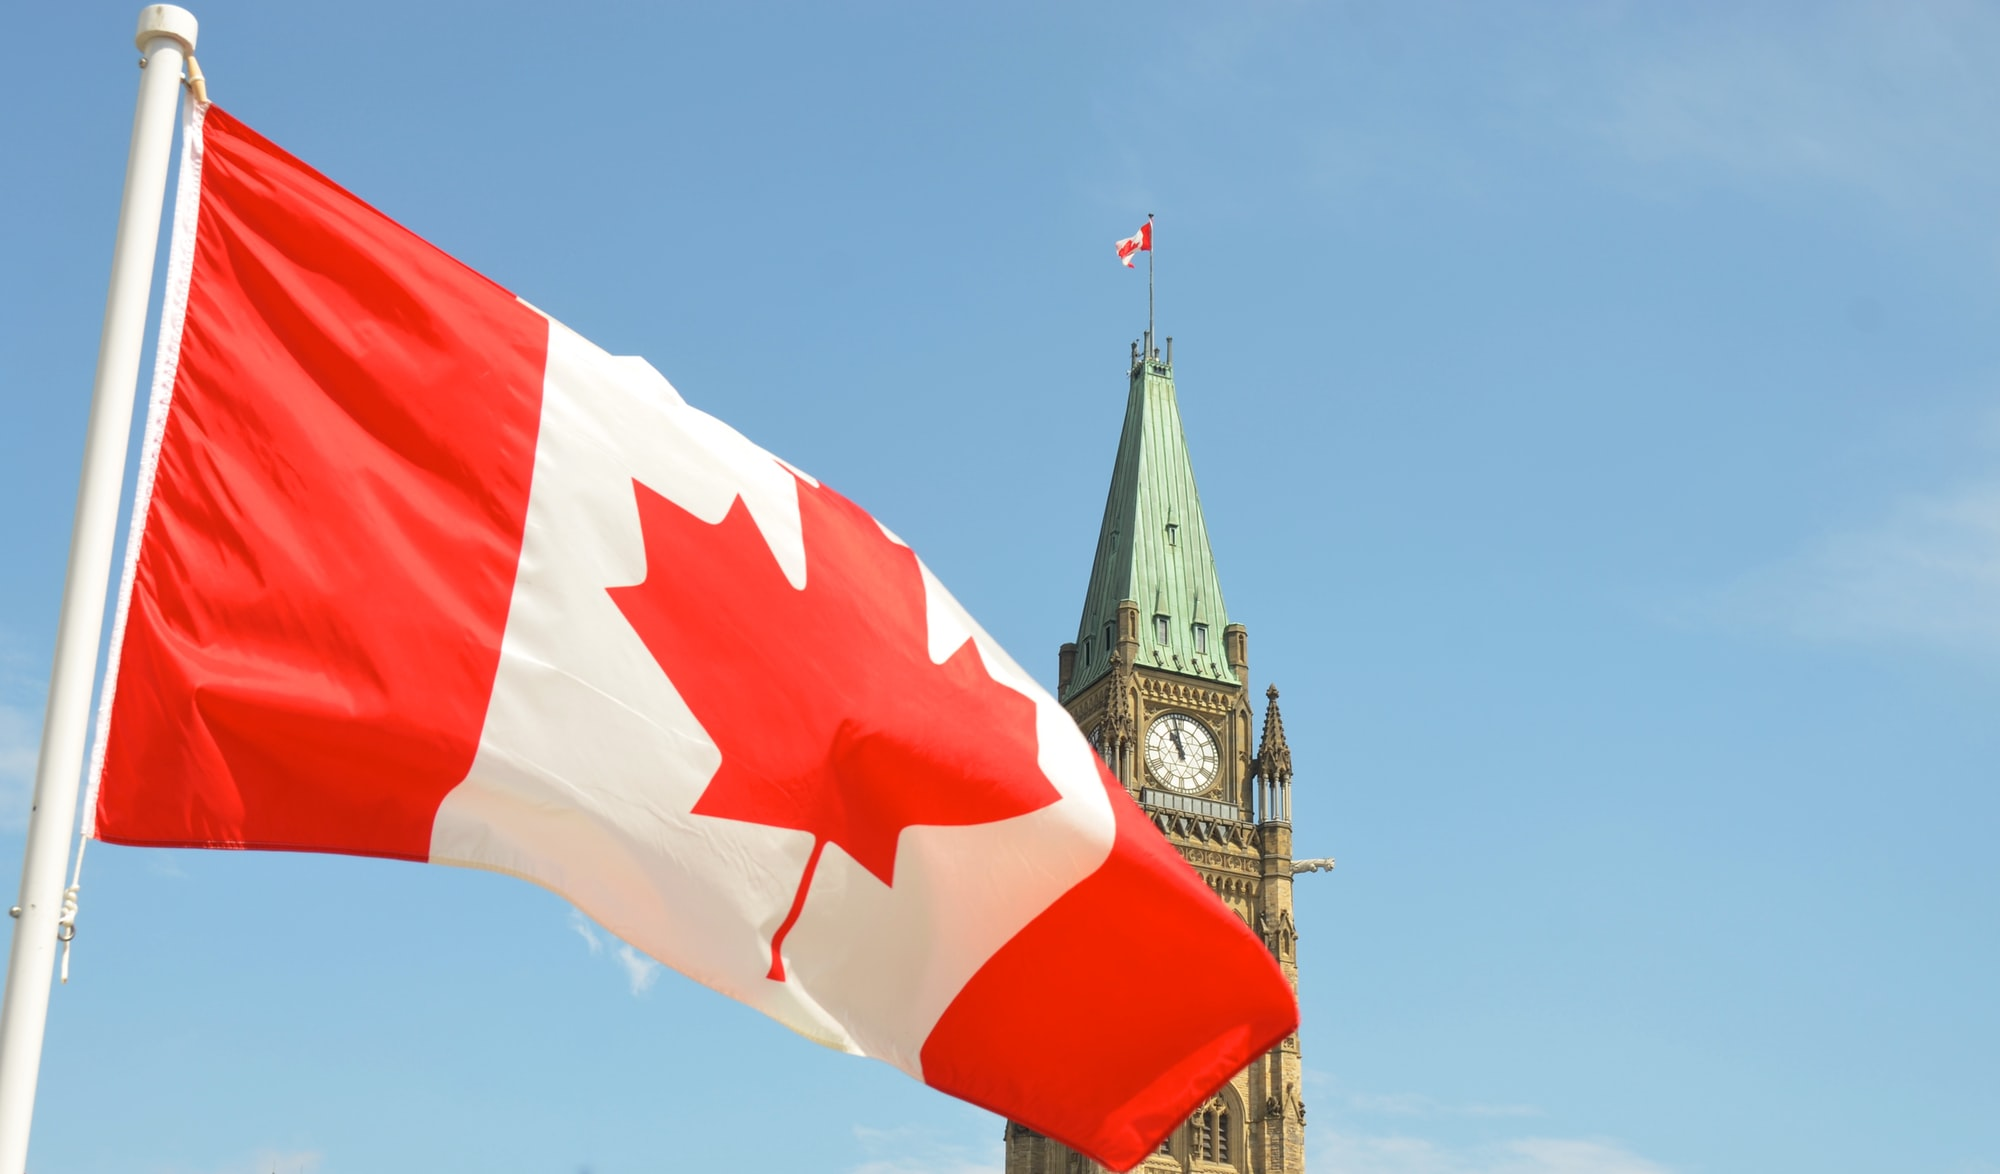 * List of Songs by Canadians or About Canada